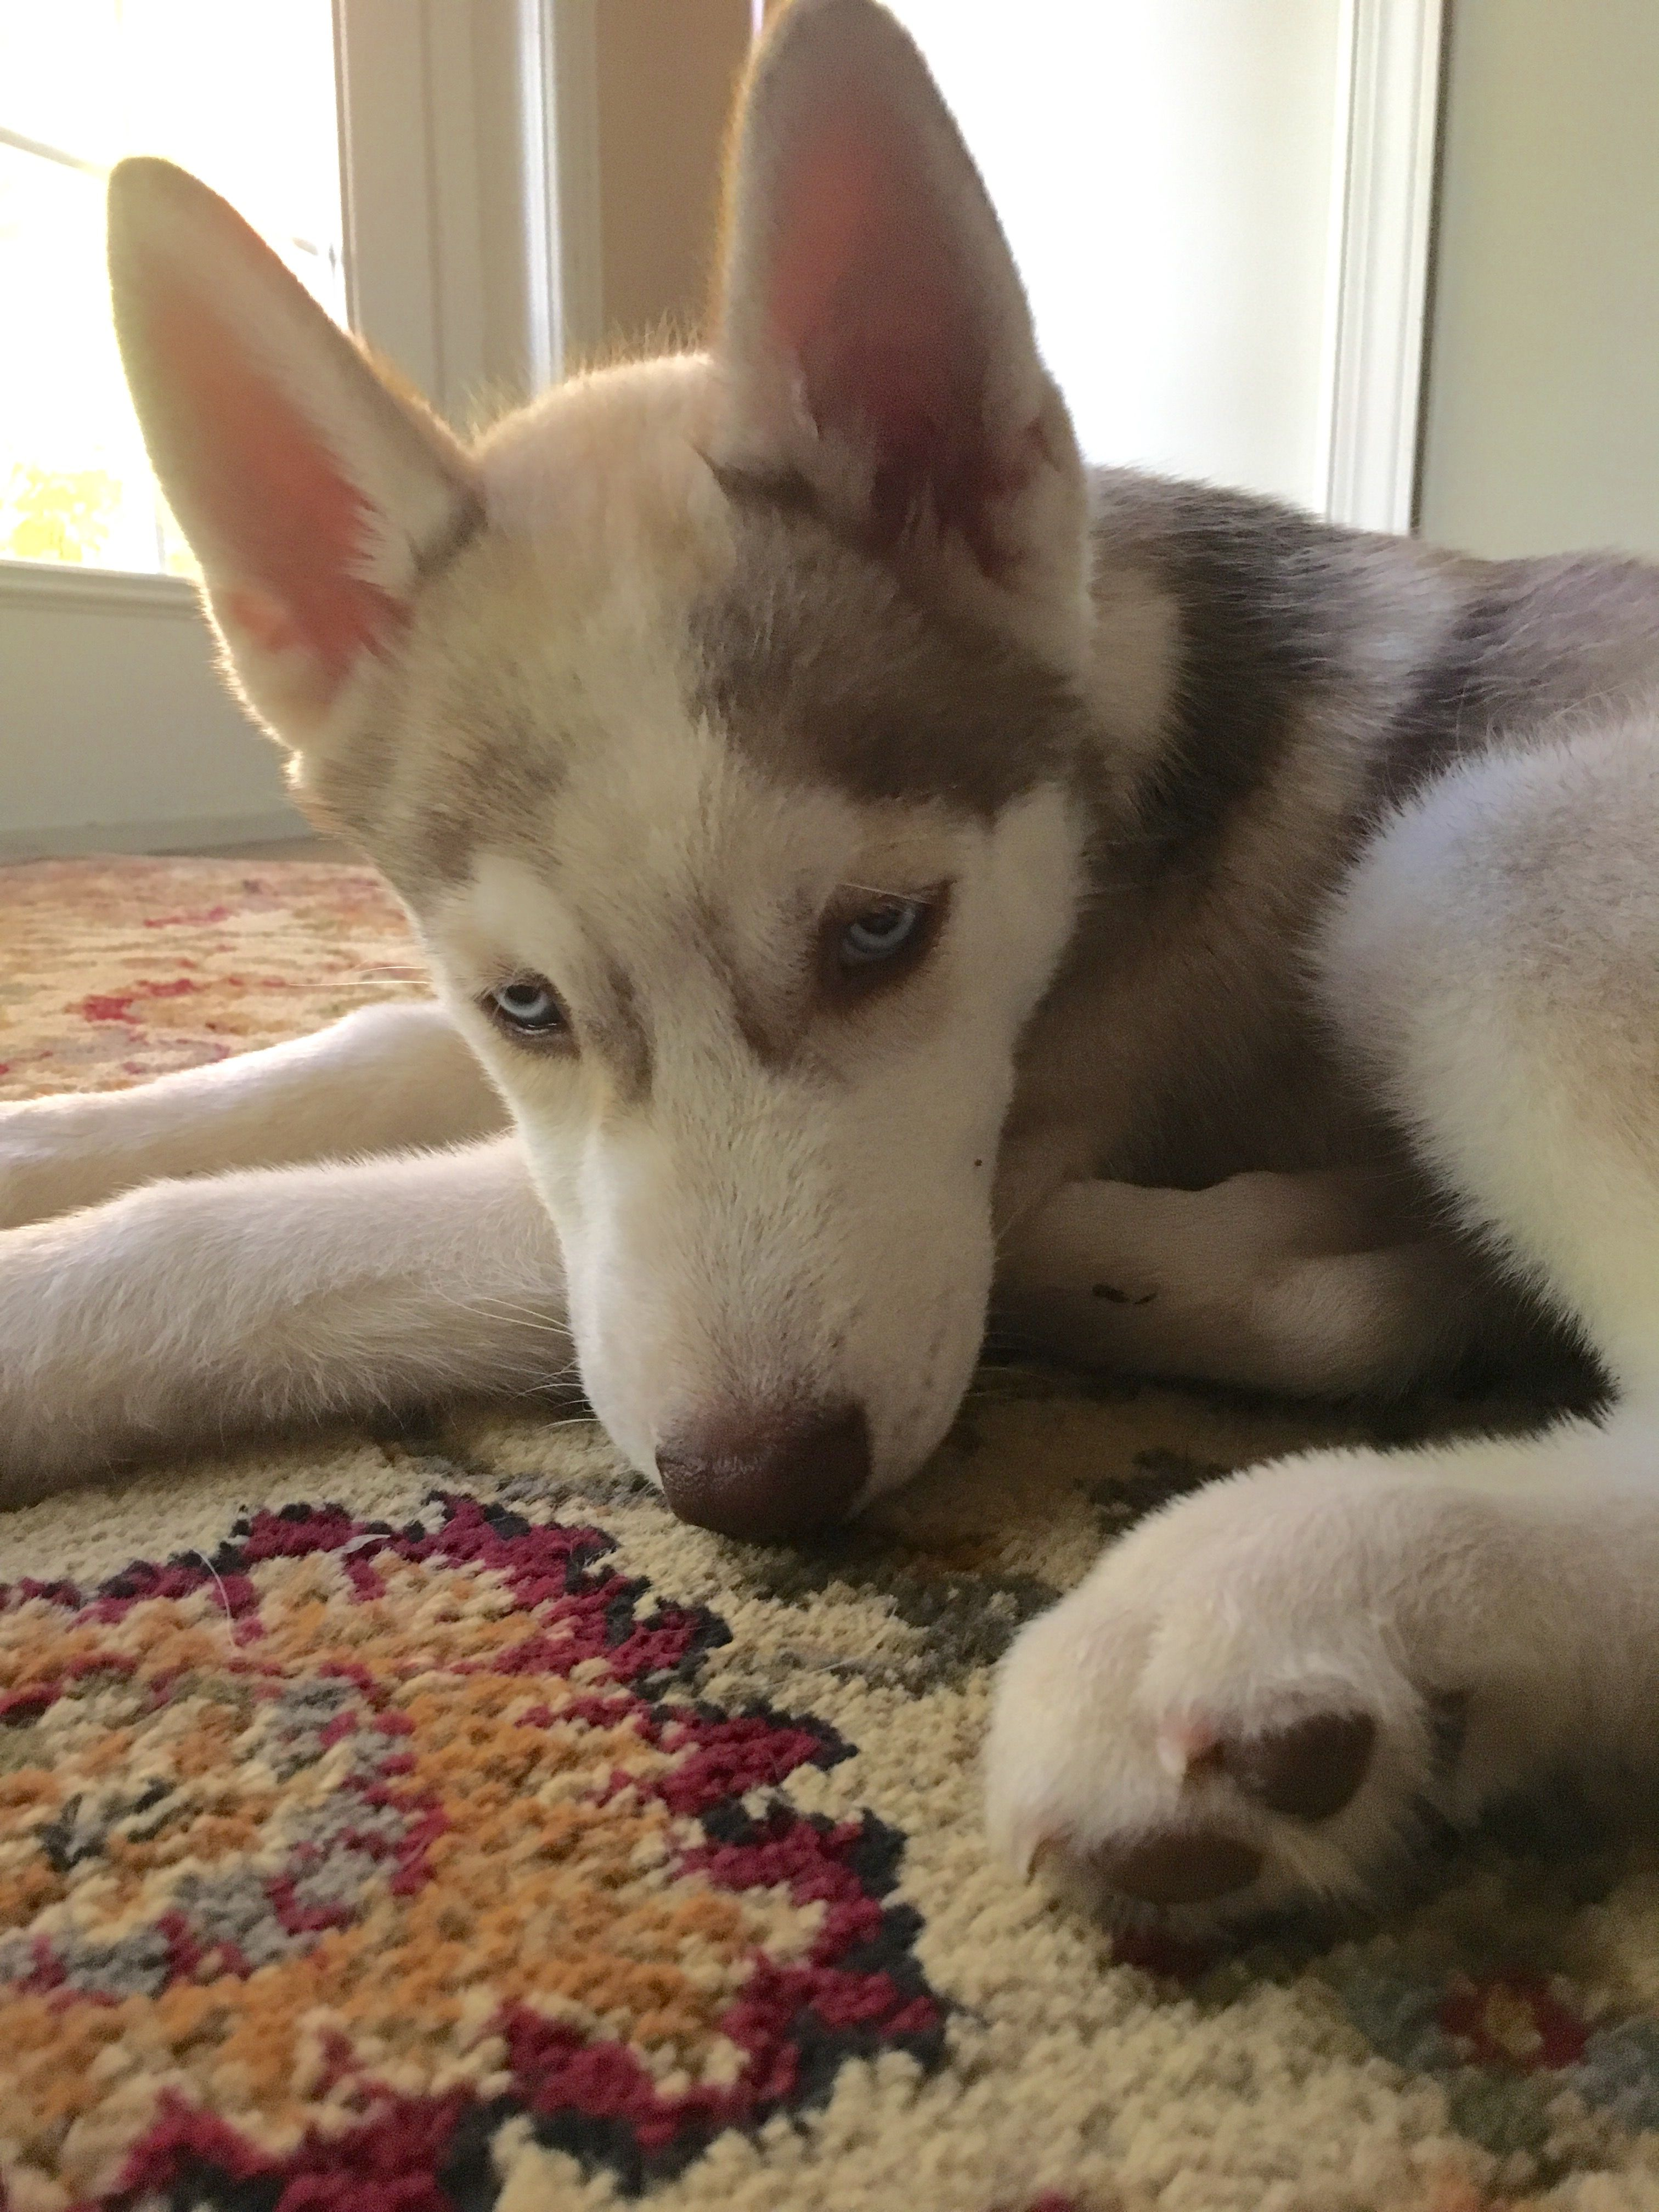 Husky Puppy 3 Months Old Tan And White With Blue Eyes With